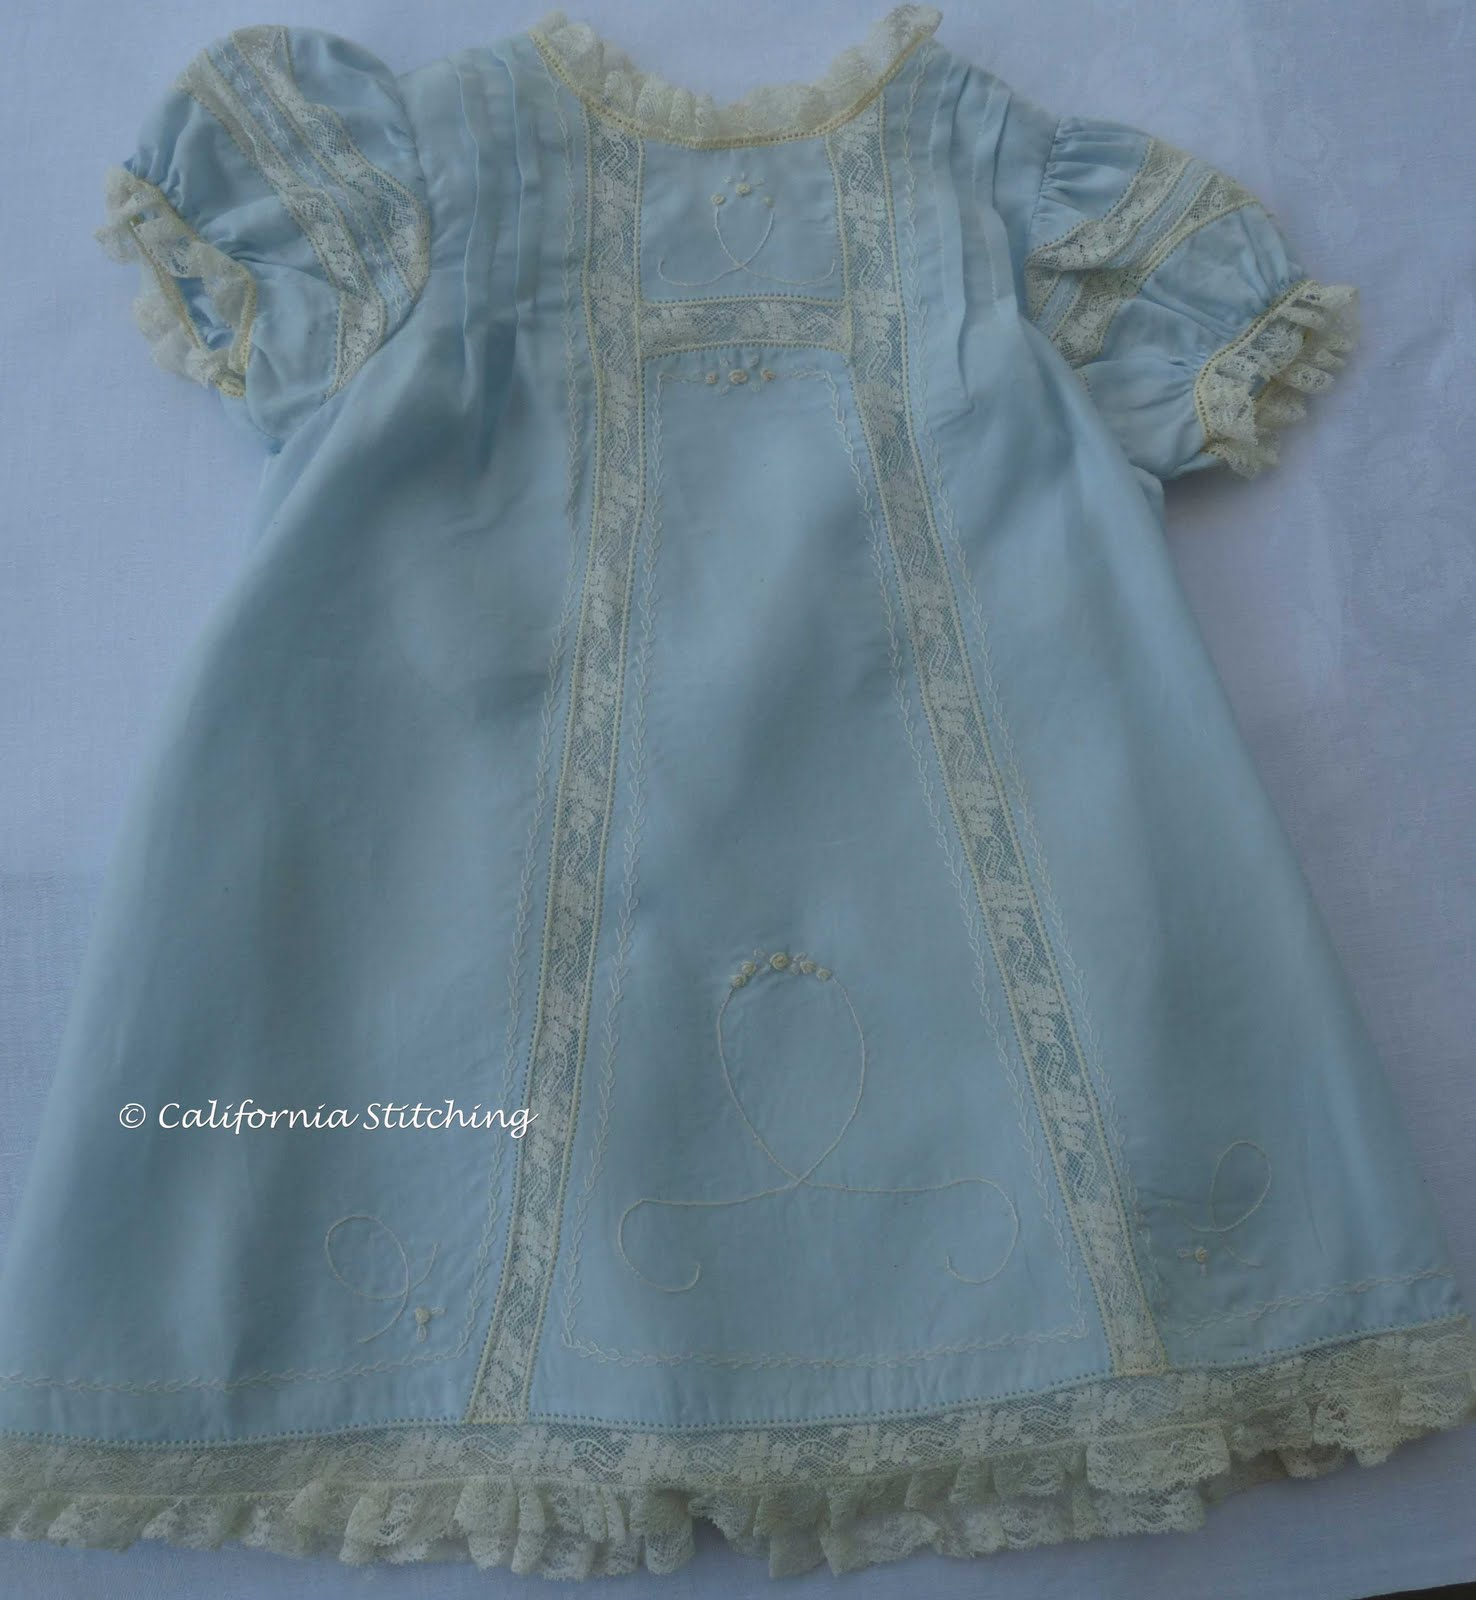 California Stitching Embroidered Blue Baby Dress 2